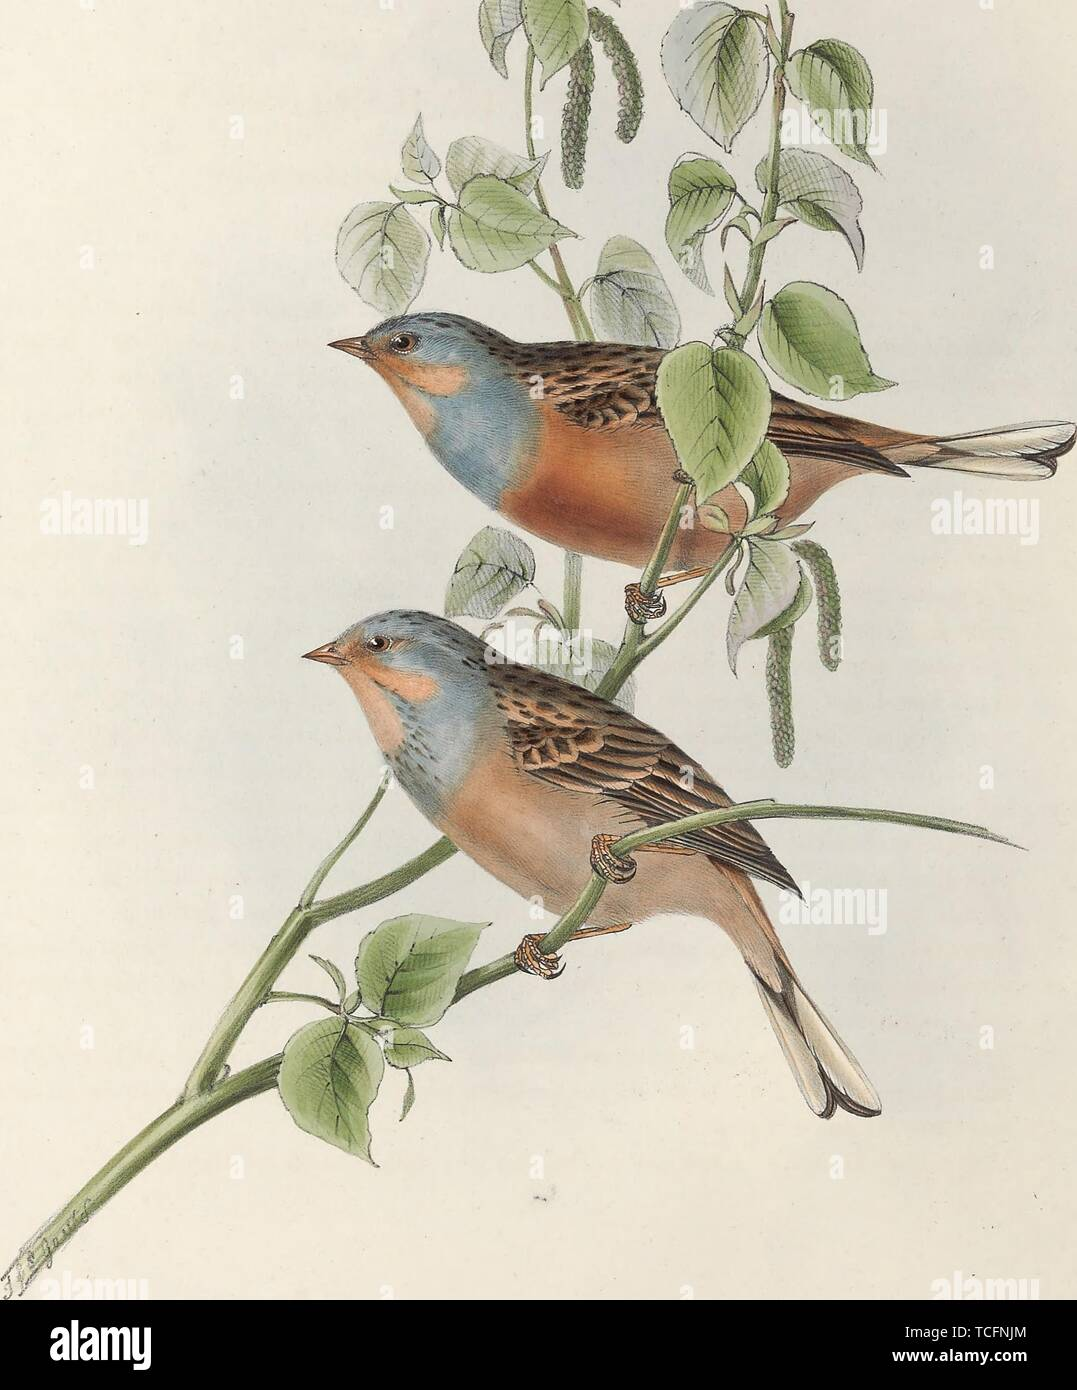 Engraved drawing of the Cretzschmar's Buntings (Emberiza caesia), from the book 'The birds of Europe' by John Gould, 1837. Courtesy Internet Archive. () - Stock Image